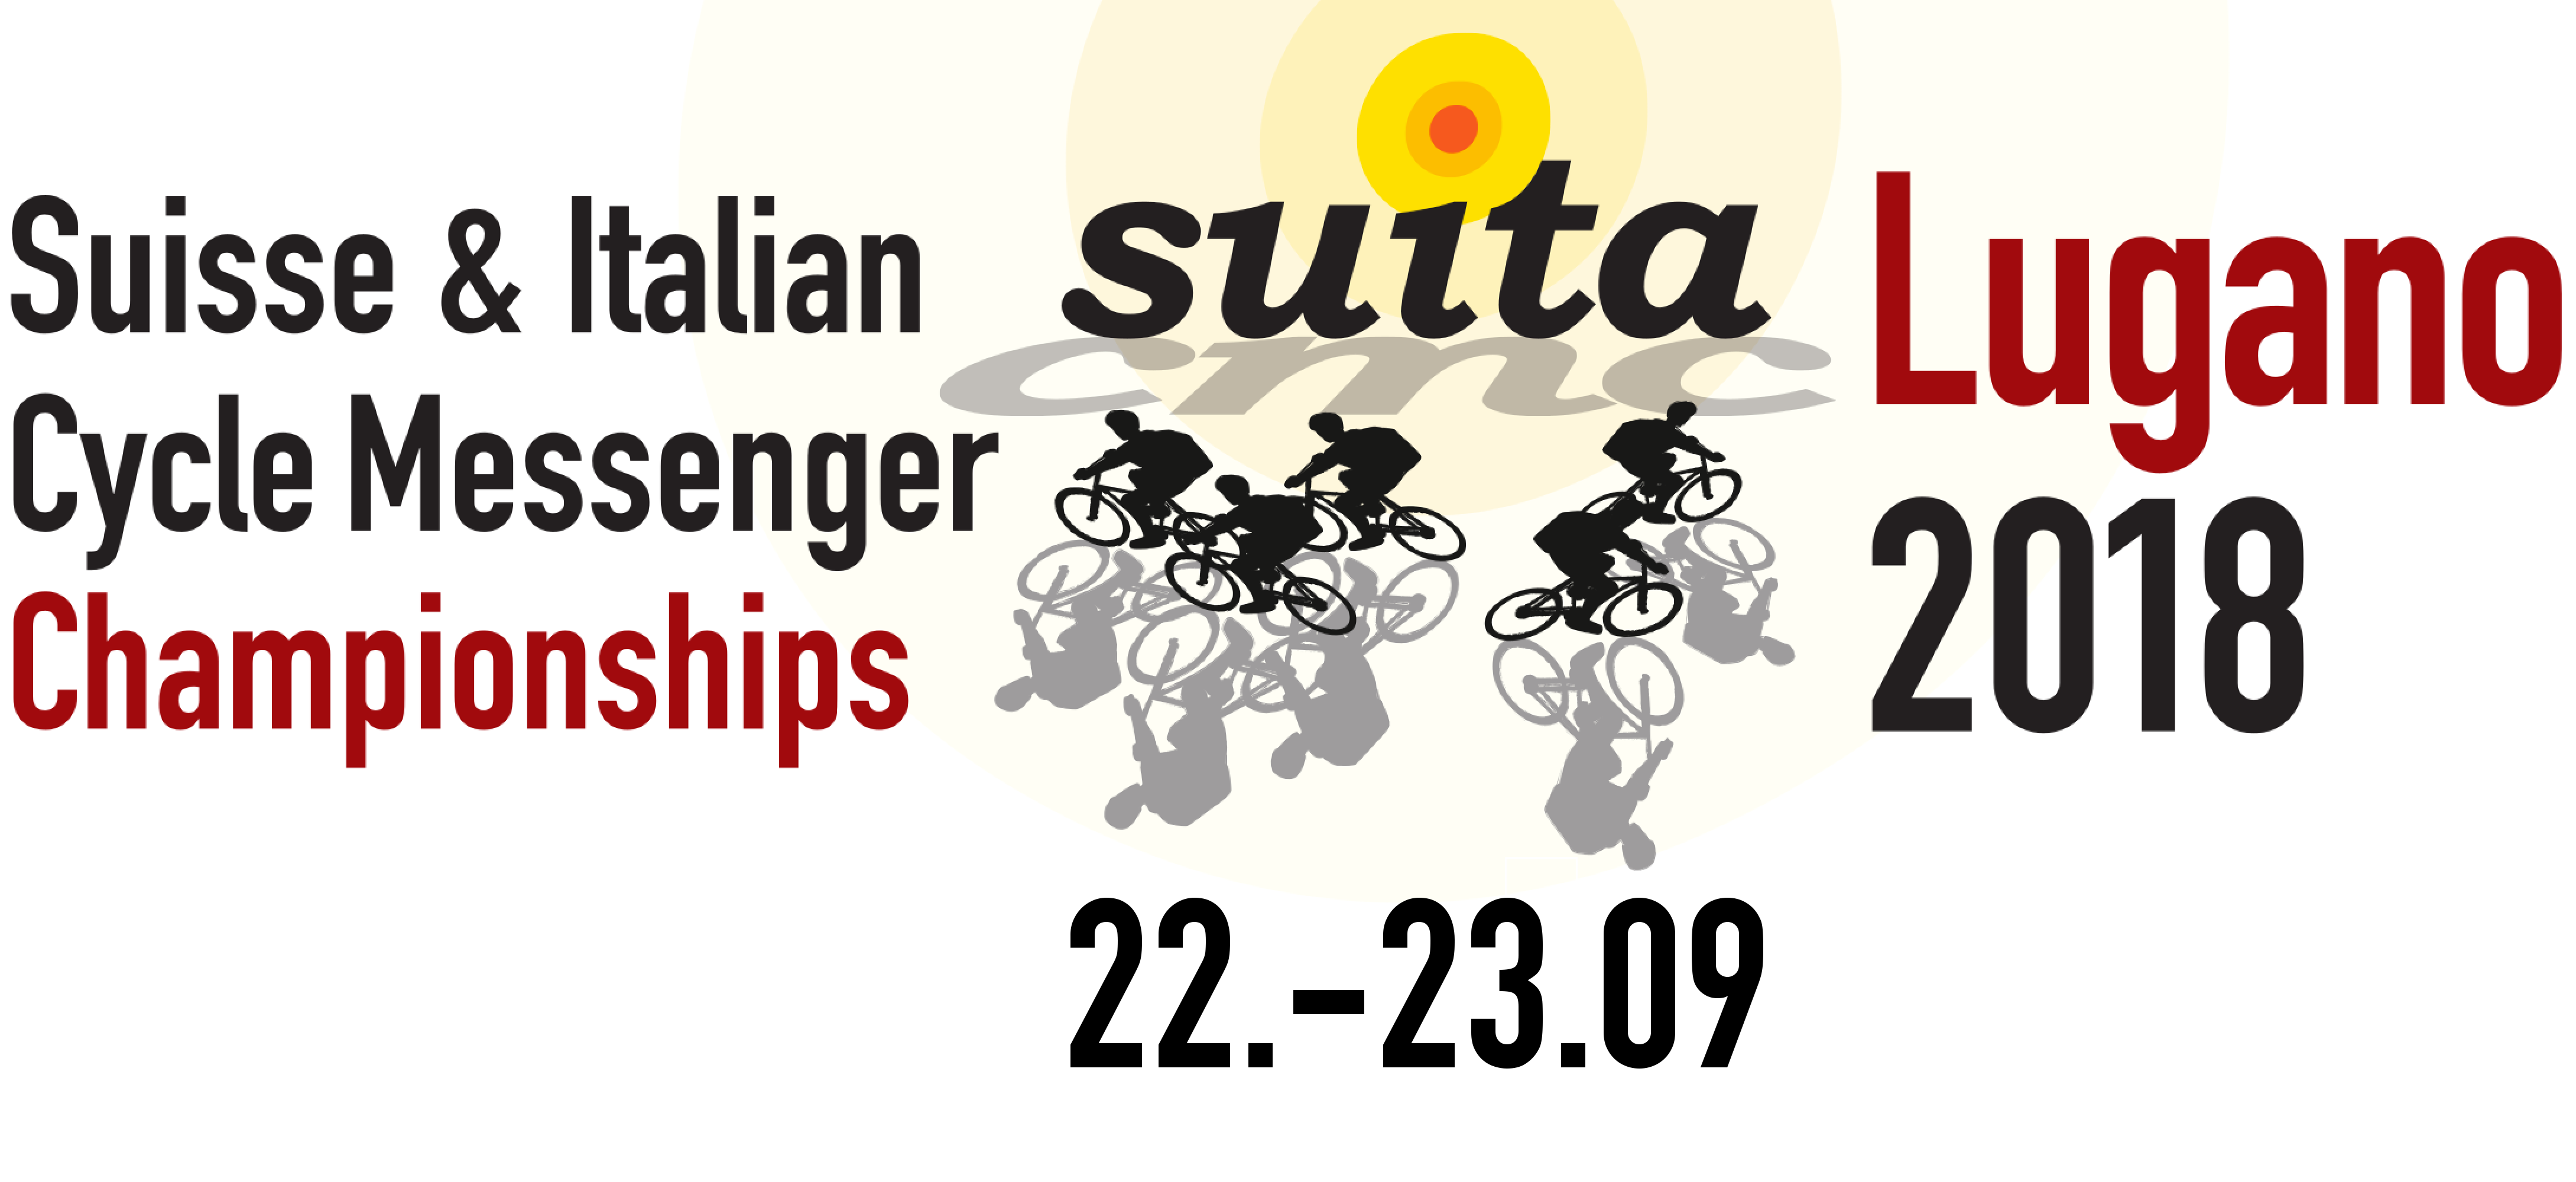 Suisse & Italian Cycle Messenger Championship Lugano 22.-23.09.2018